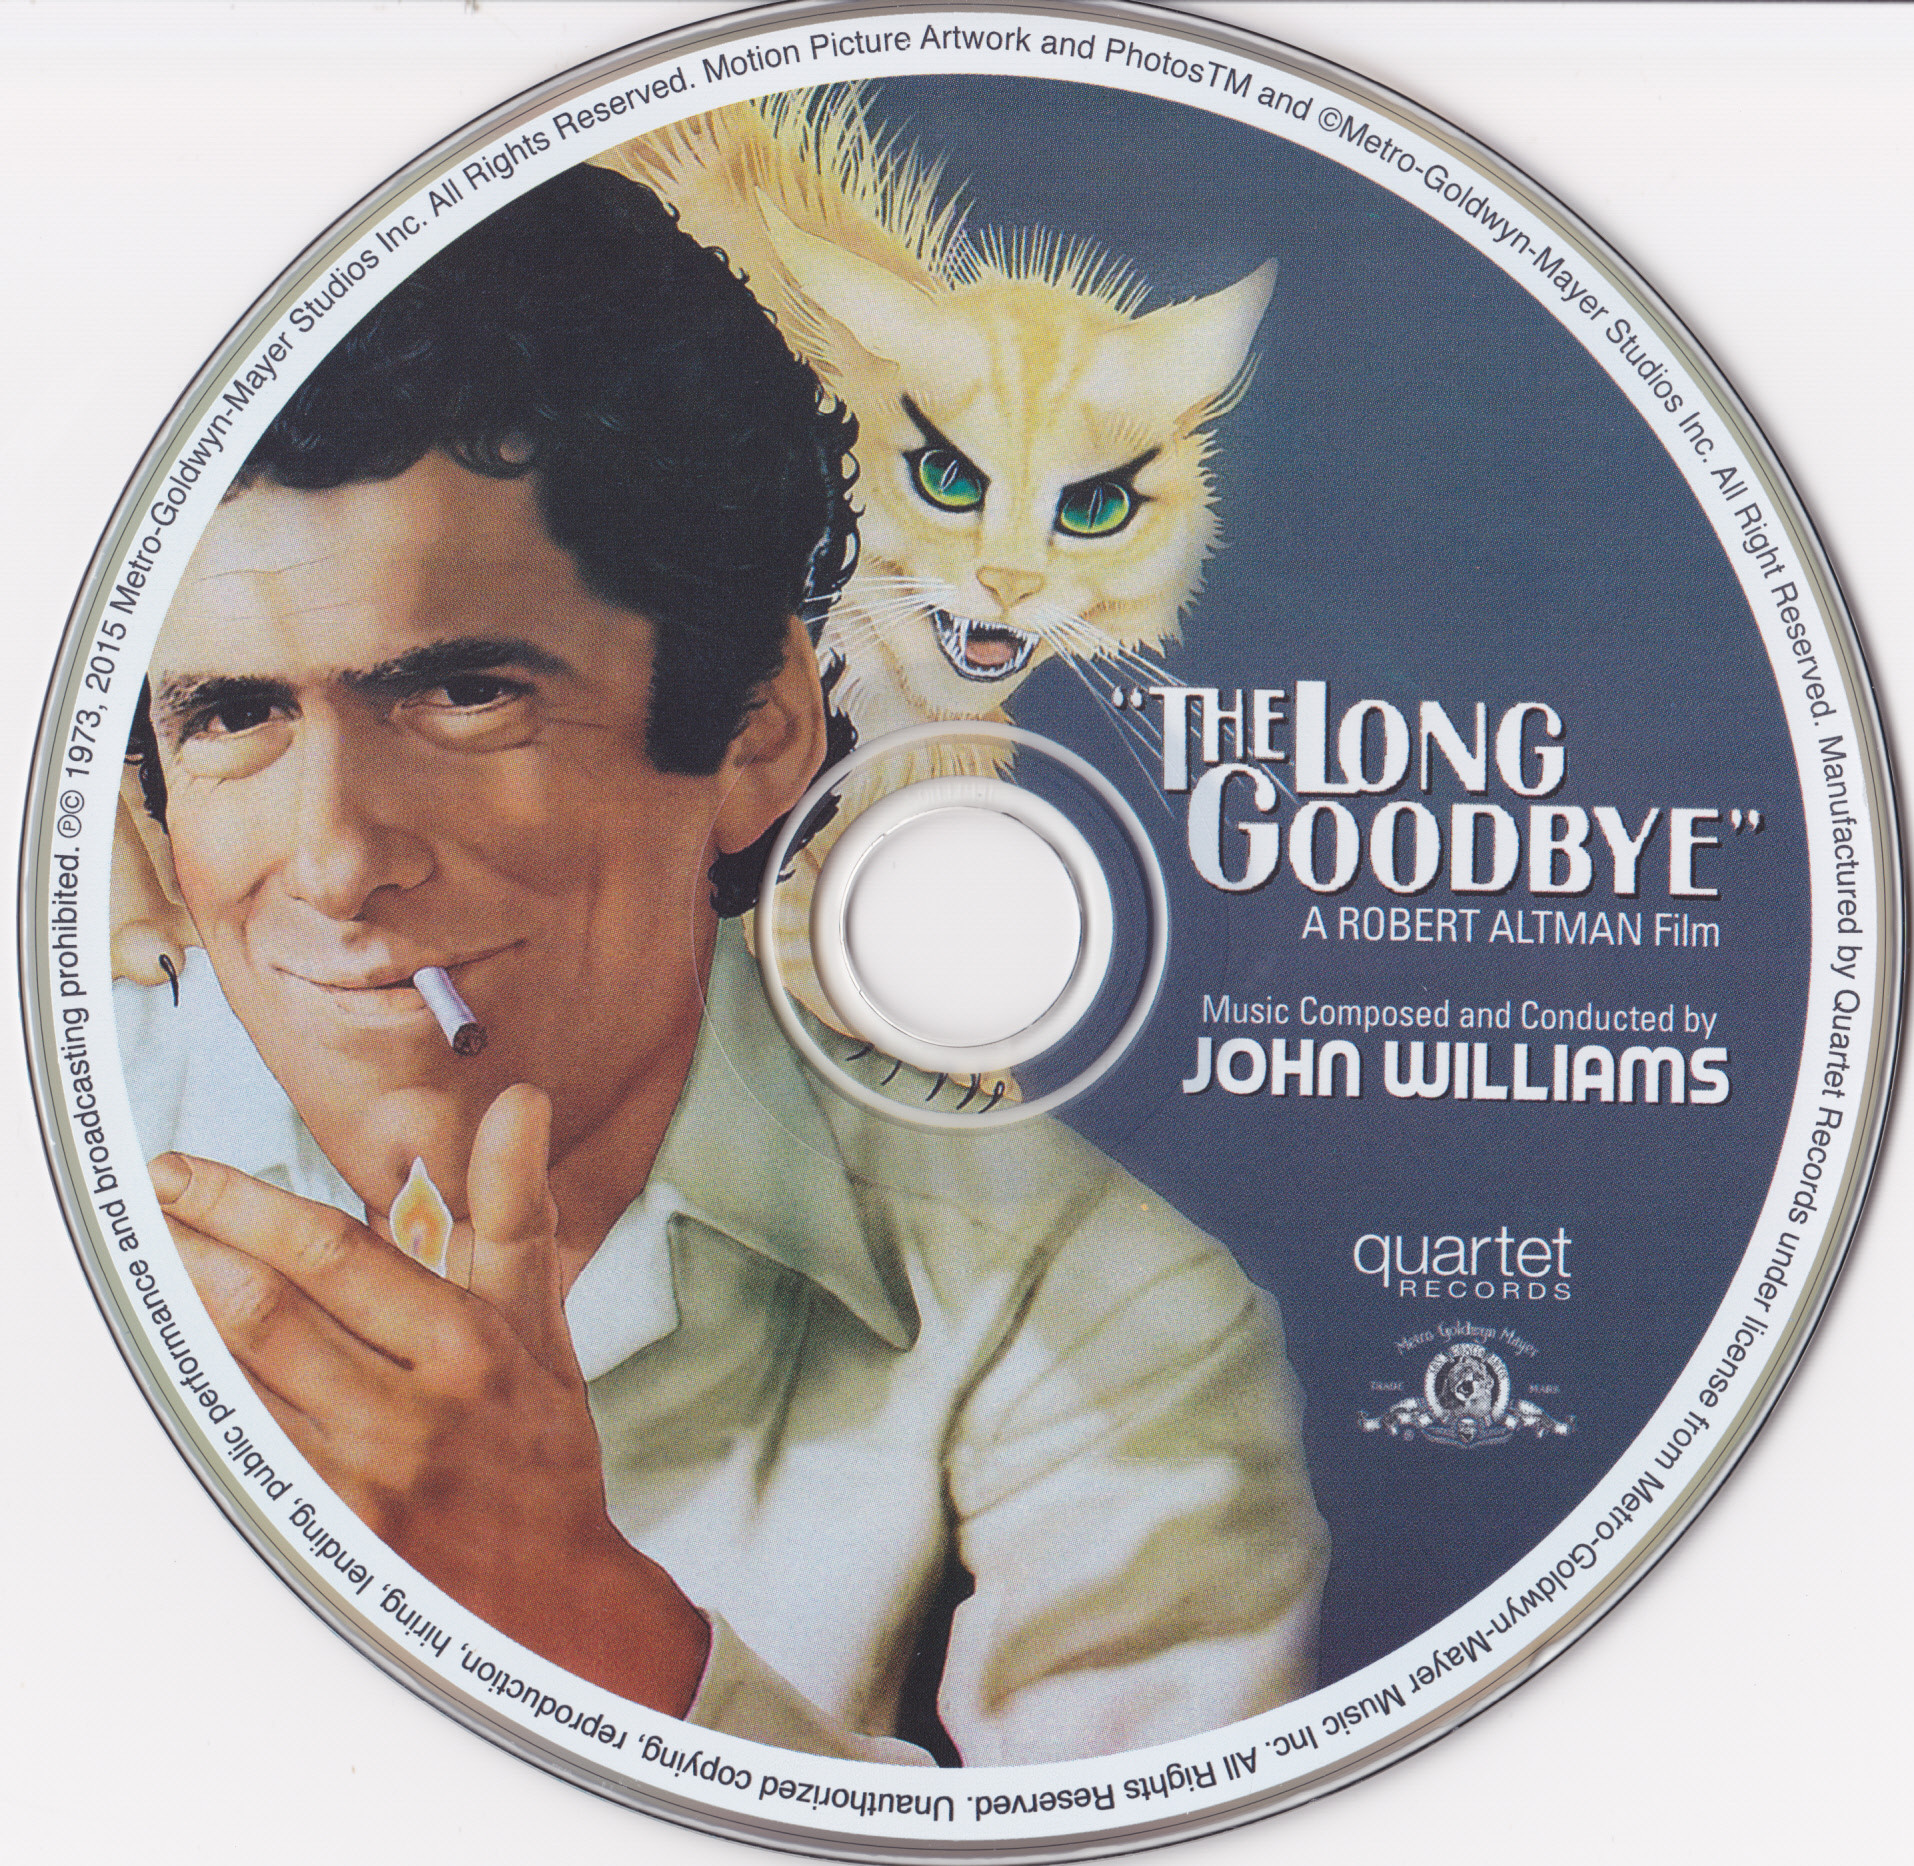 the long goodbye summary The long goodbye is a 1973 neo-noir mystery thriller film directed by robert altman and based on raymond chandler's 1953 novel of the same title.